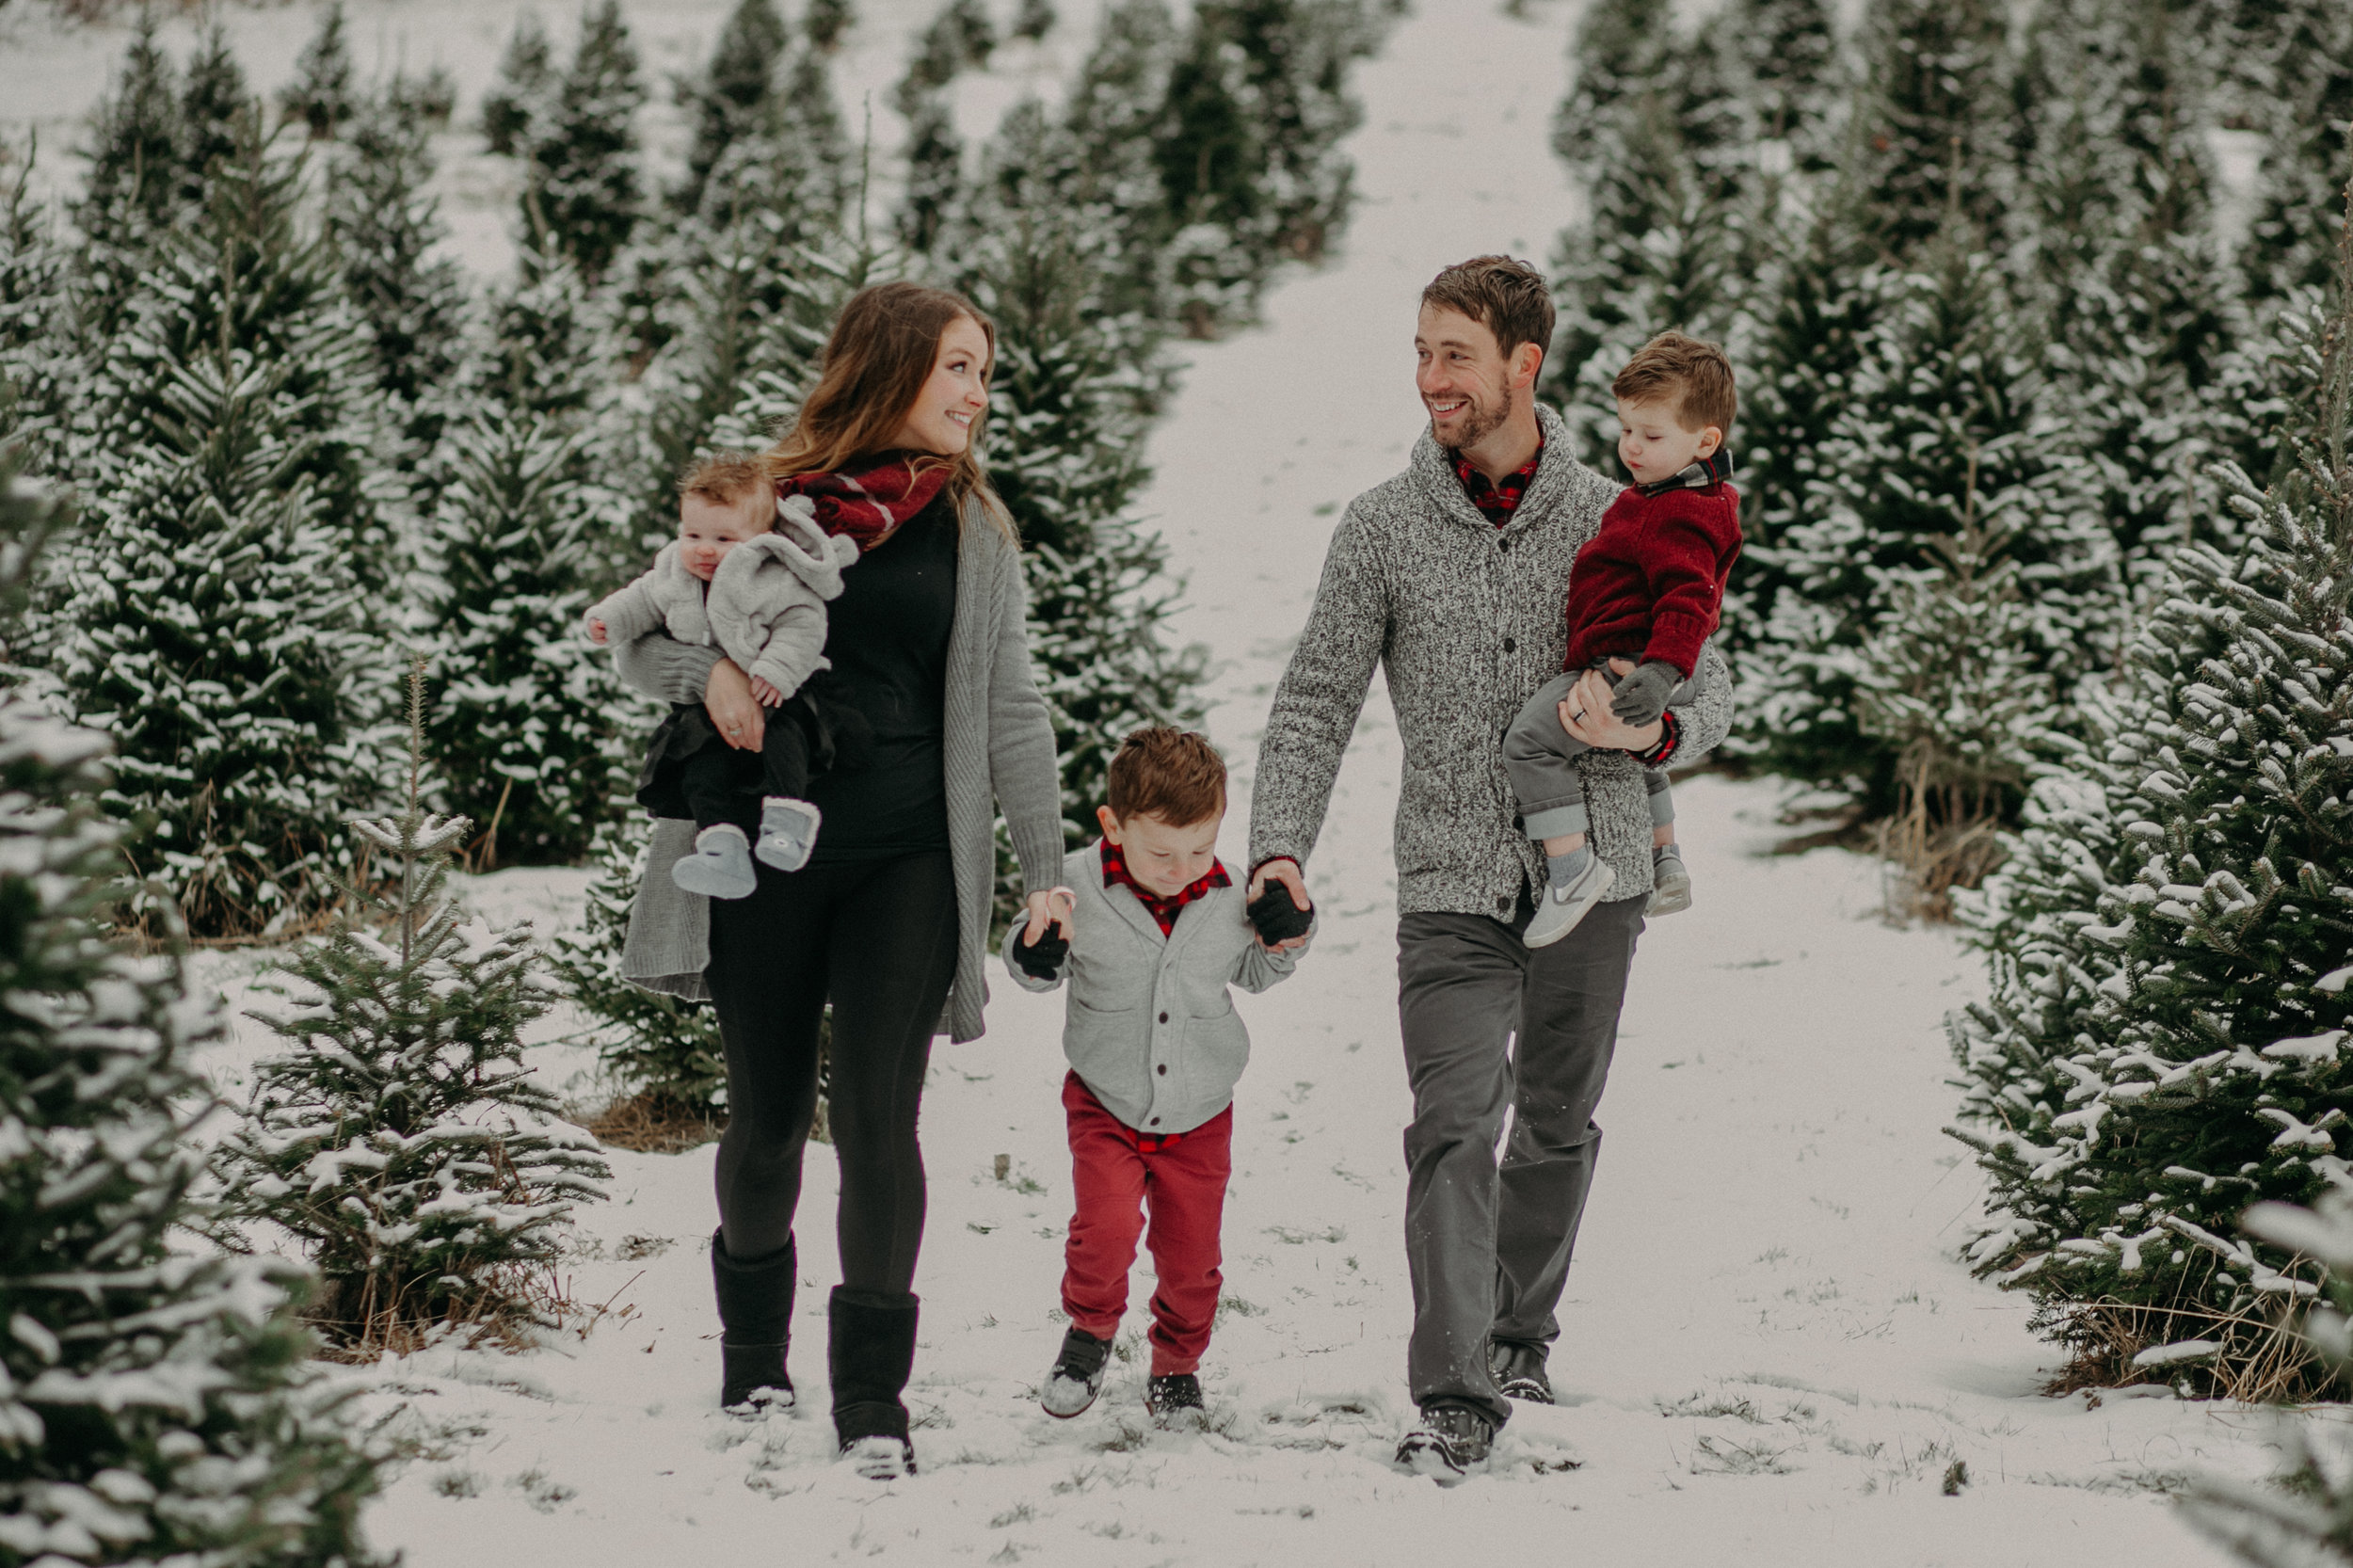 winter family photo session at Santa's Evergreens in Hudson WI